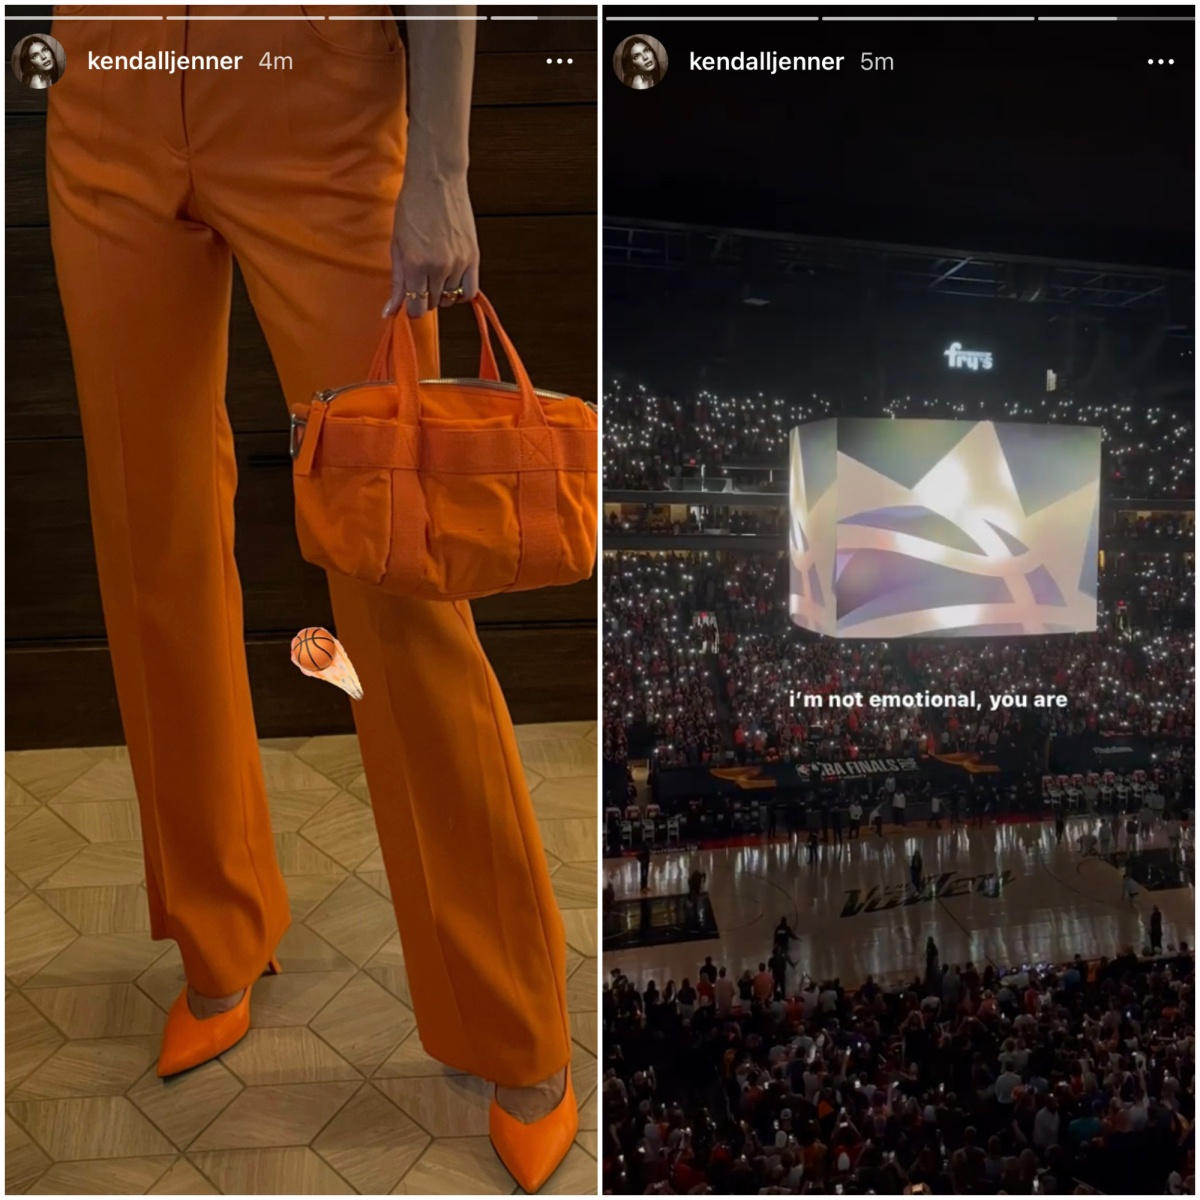 Kendall shows her support for Devin Booker